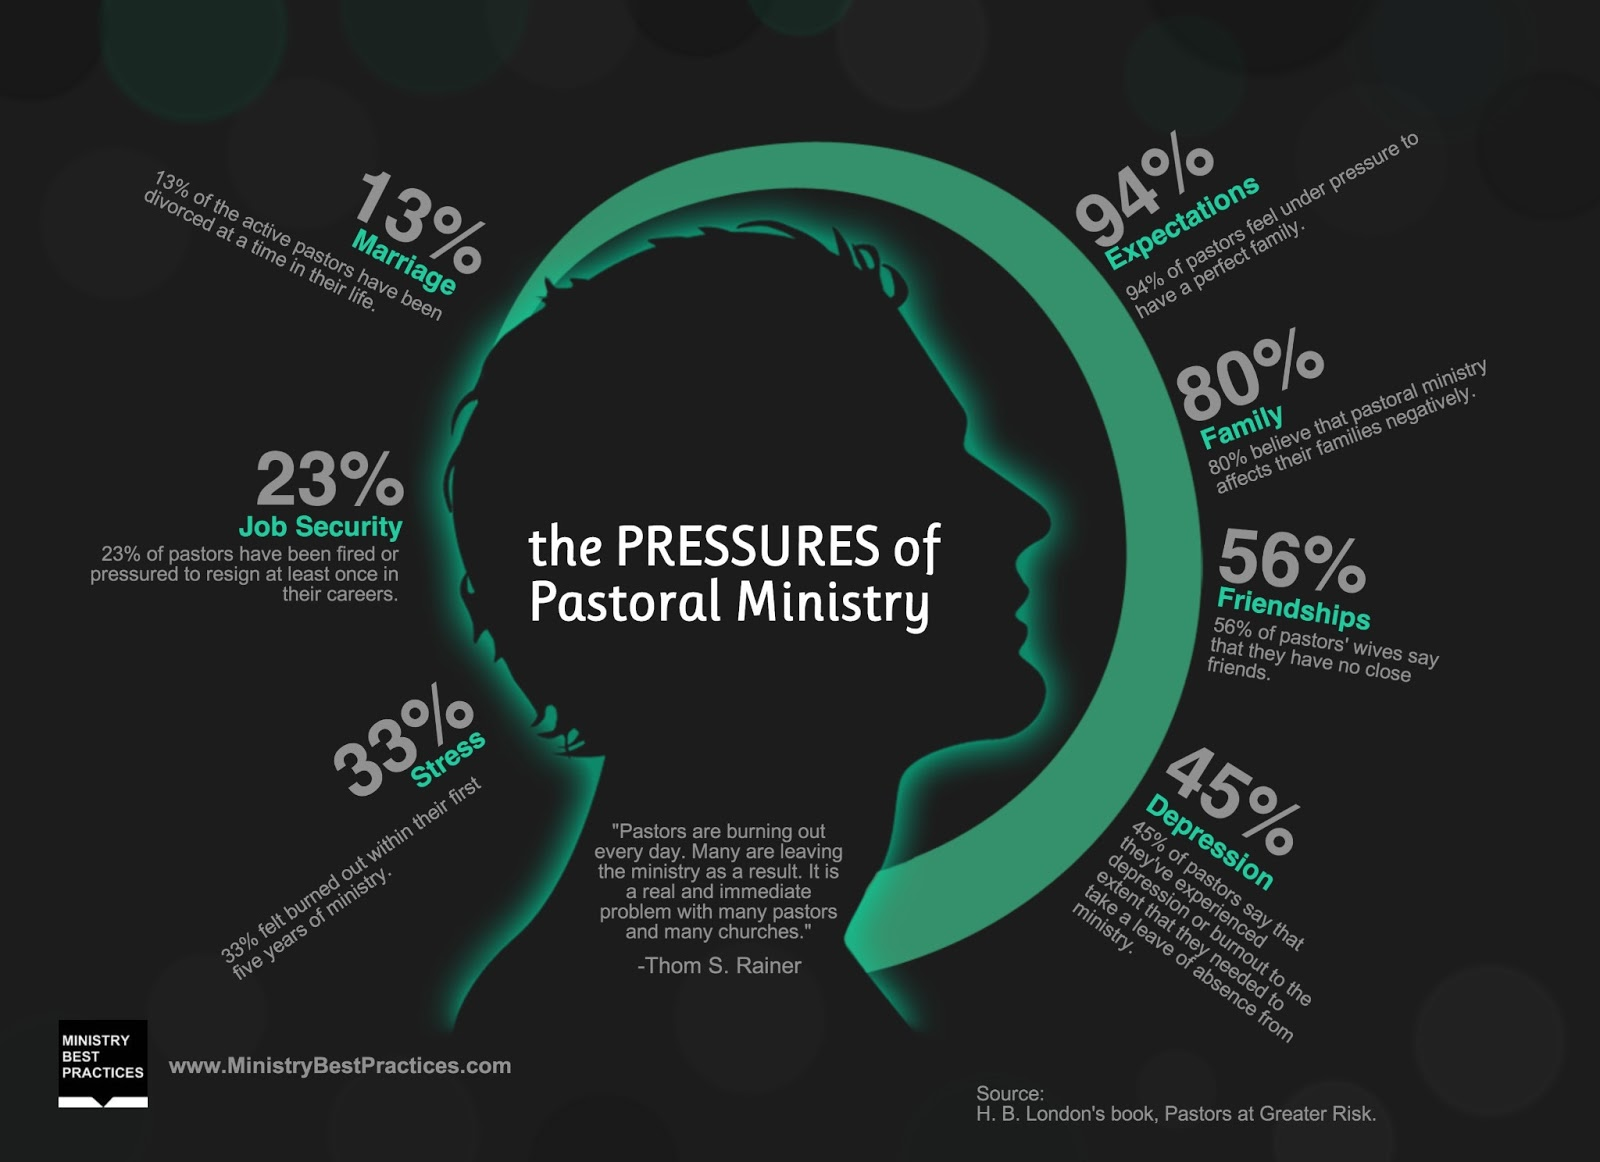 Pressures of pastoral ministry infographic ministry best practices members of the clergy now suffer from obesity hypertension and depression at rates higher than most americans in the last decade altavistaventures Image collections